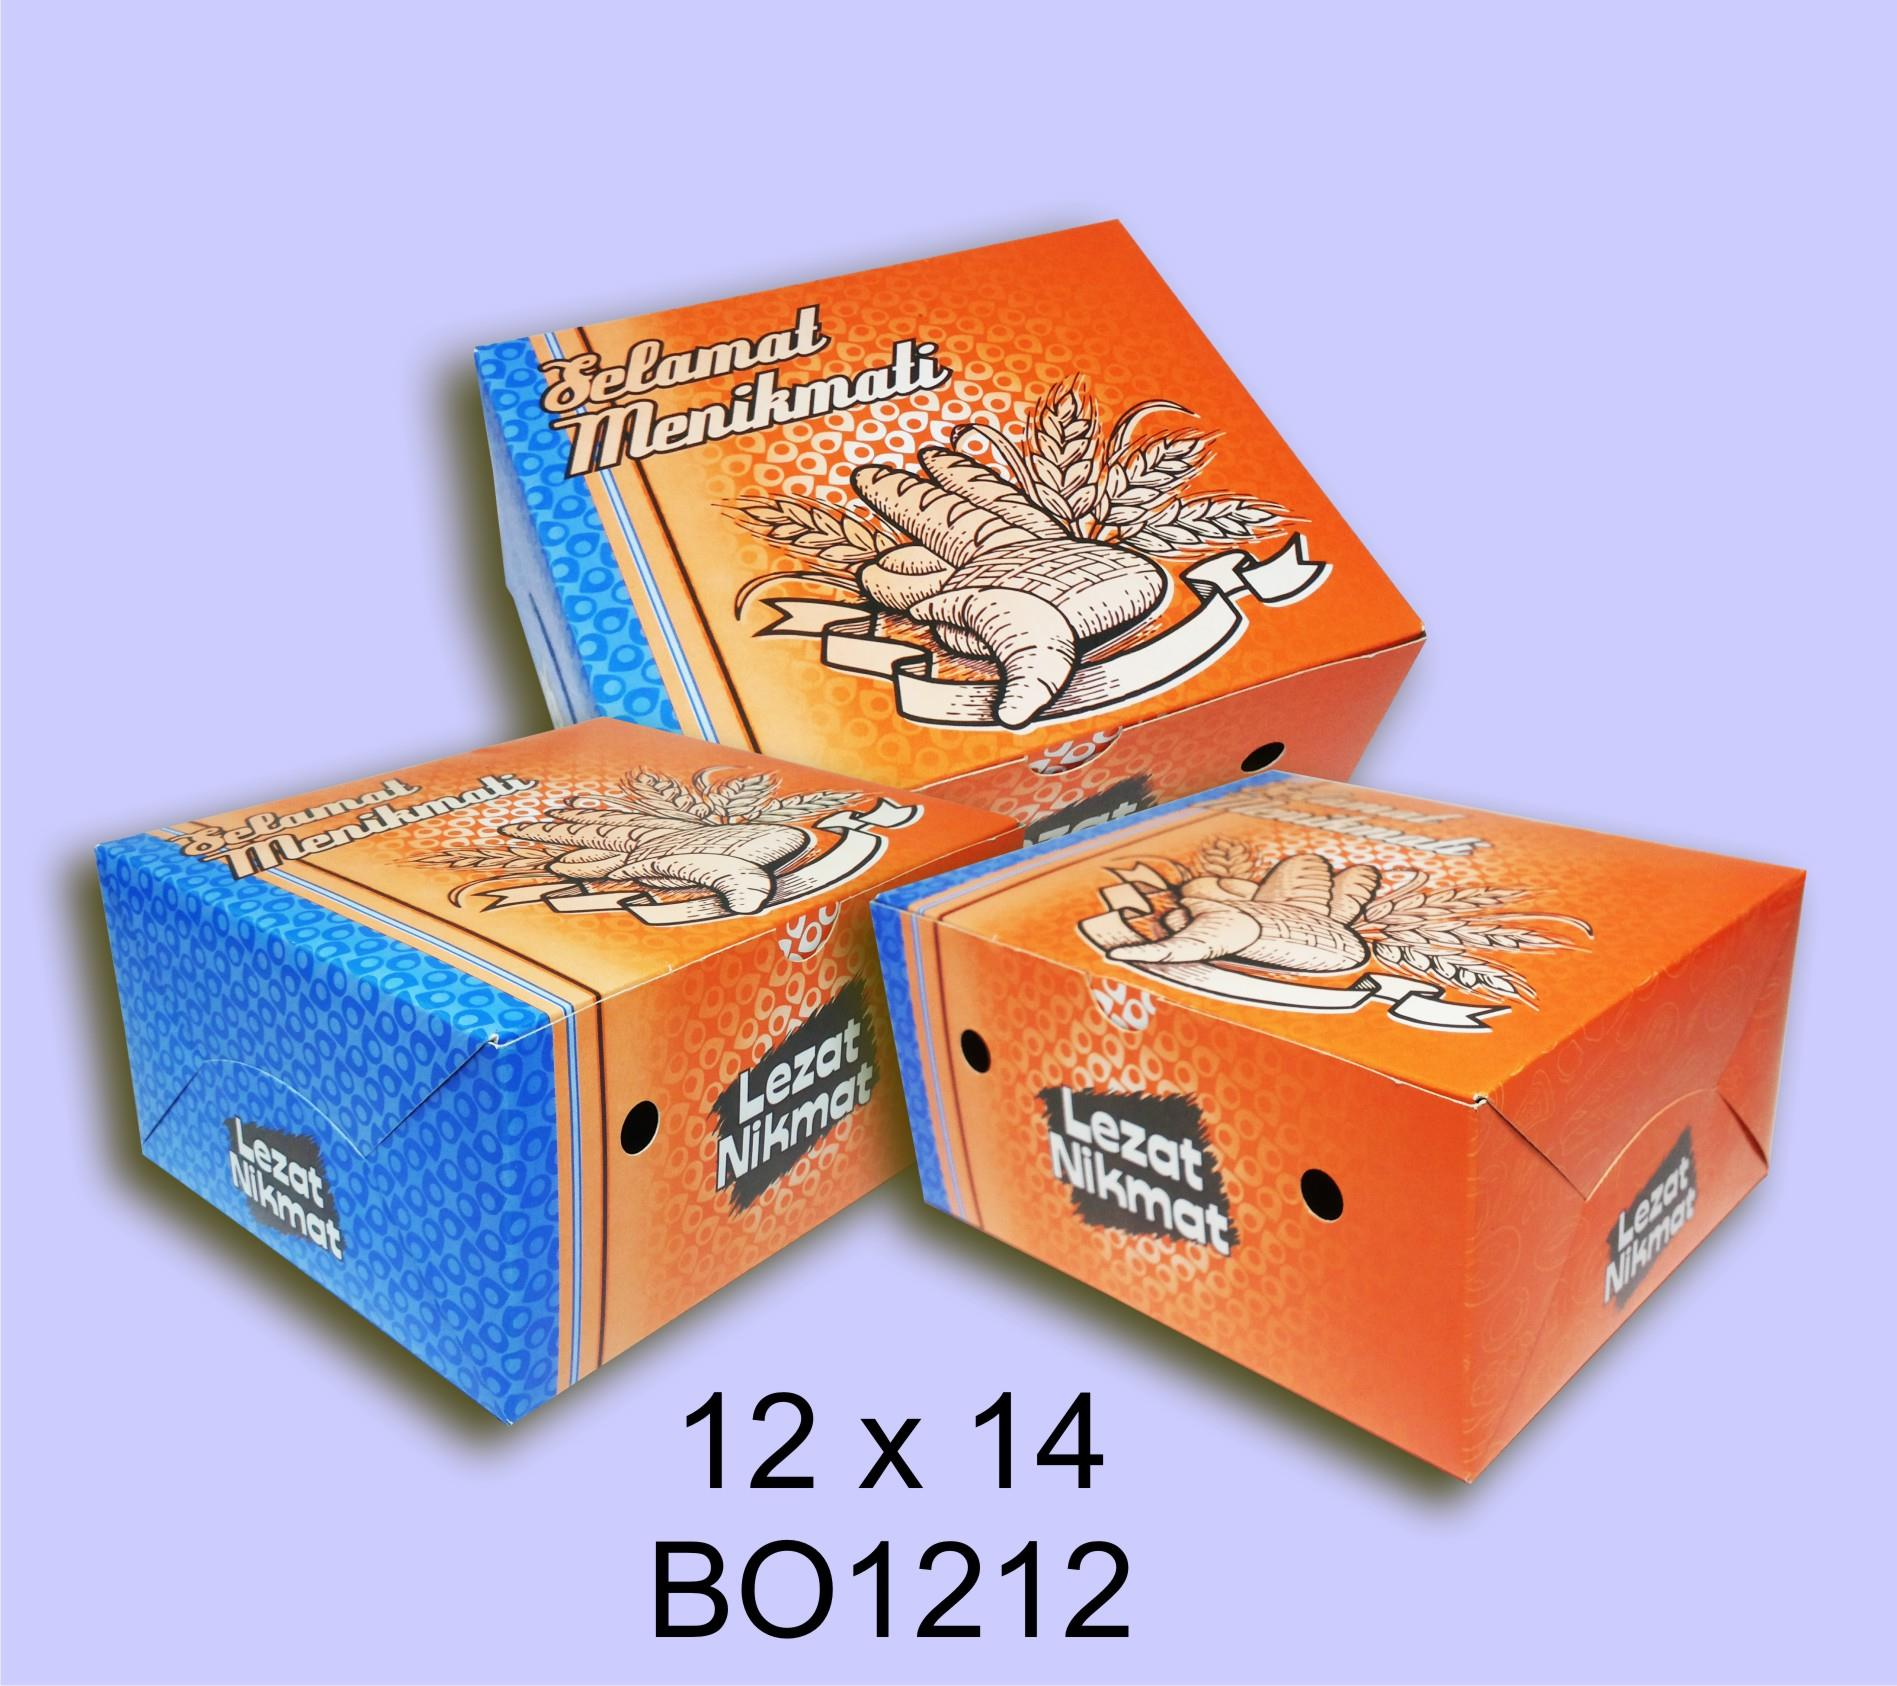 Sell Food Cartons Box Print Boxes Dining Catering Dus Kotak Note 8 Full Set Eat Rice Paper From Indonesia By Pt Integritas Multi Kreatifindocheap Price